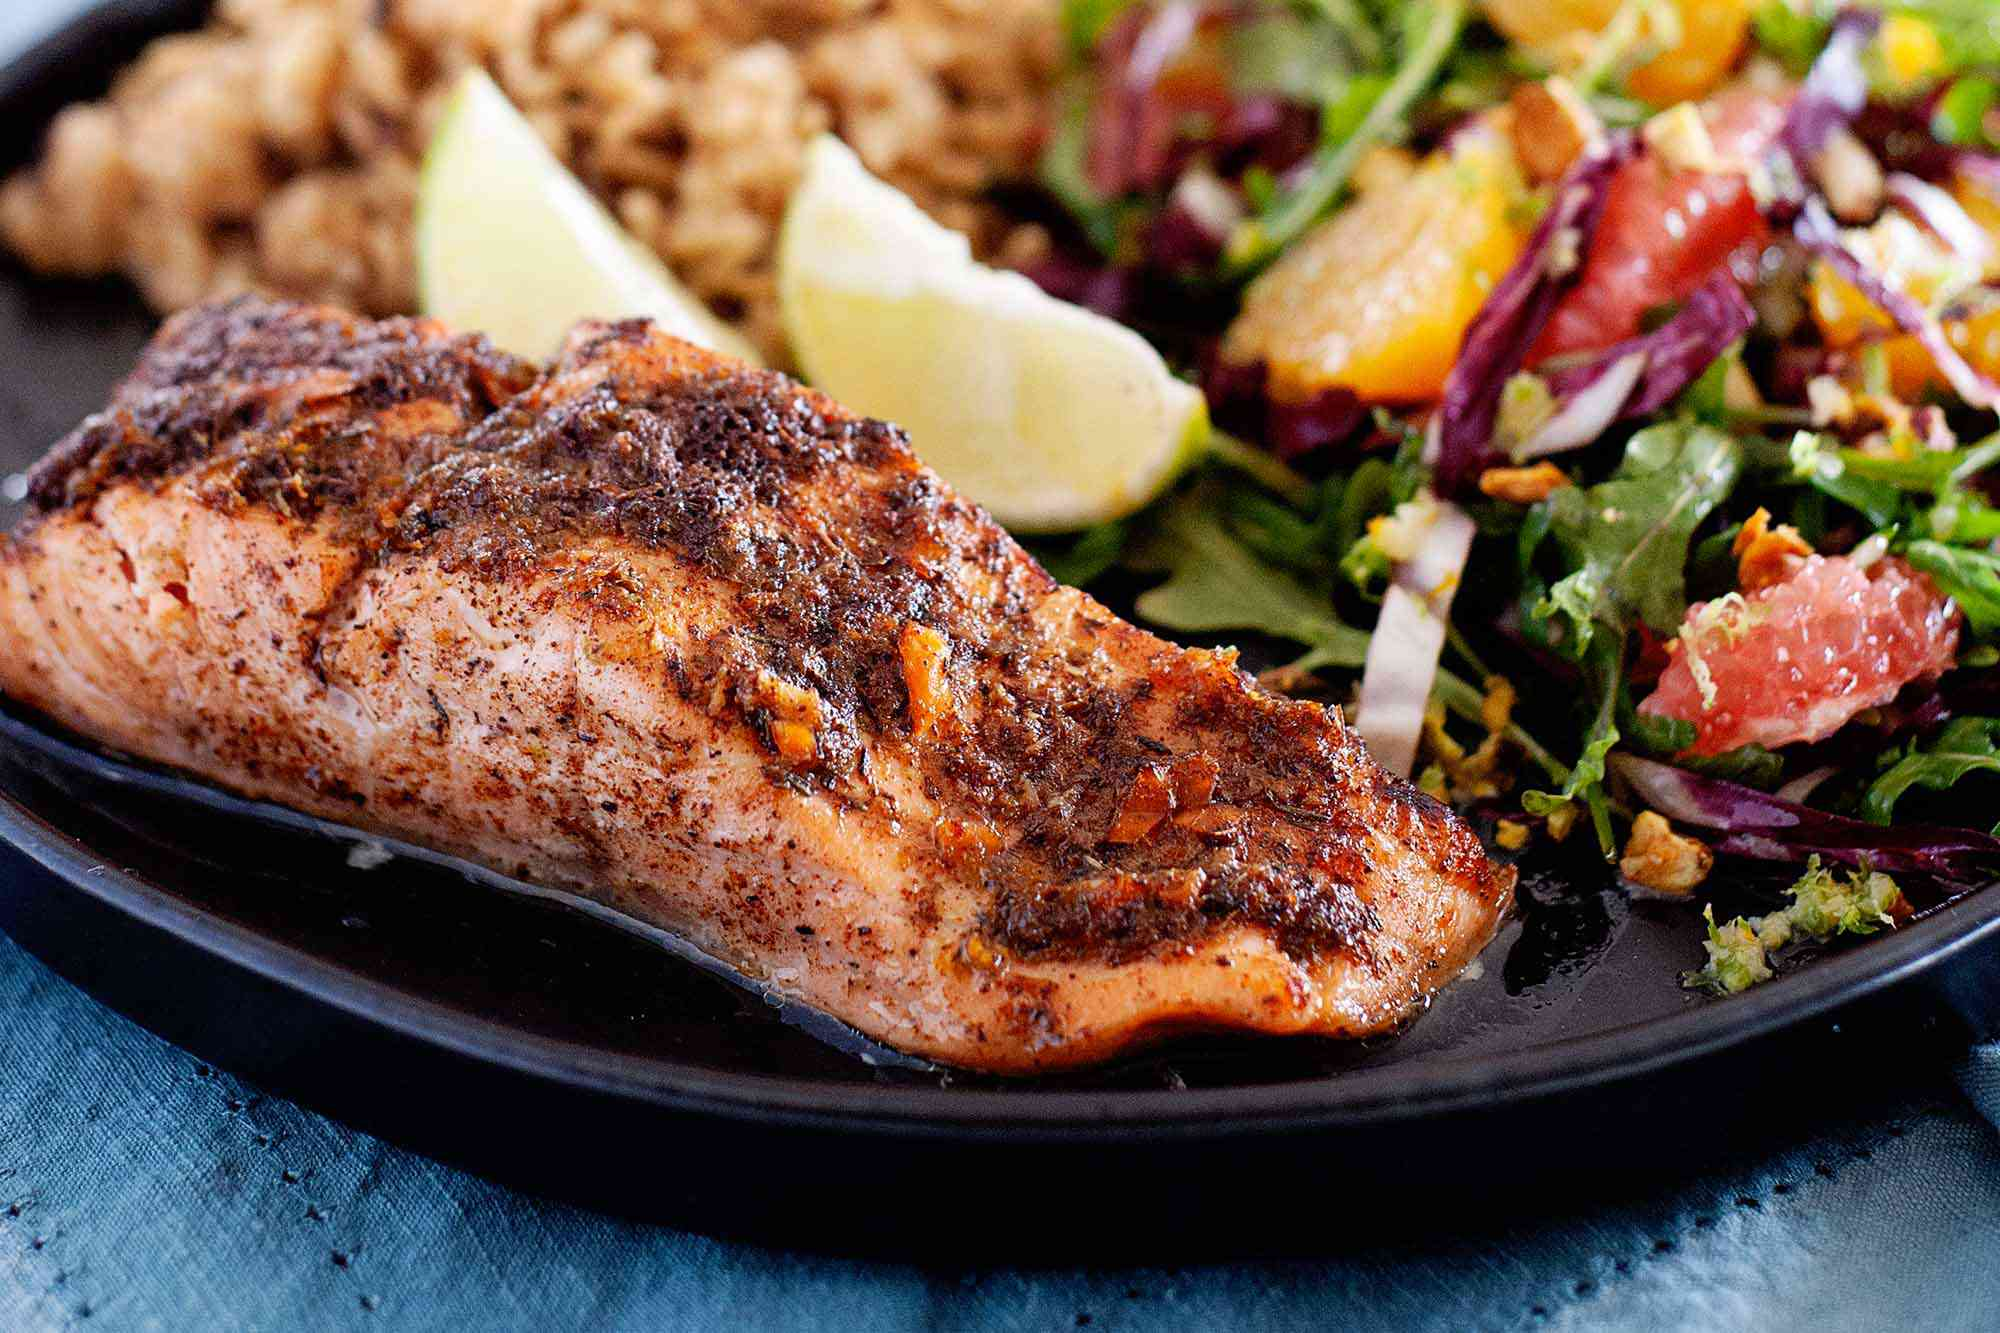 Side view of a fillet of broiled jerk salmon. The salmon has juices pooled at the bottom of it. A mixed green salad with citrus, two lime wedges and rice are visible on the plate behind the salmon. The plate is on a blue linen.